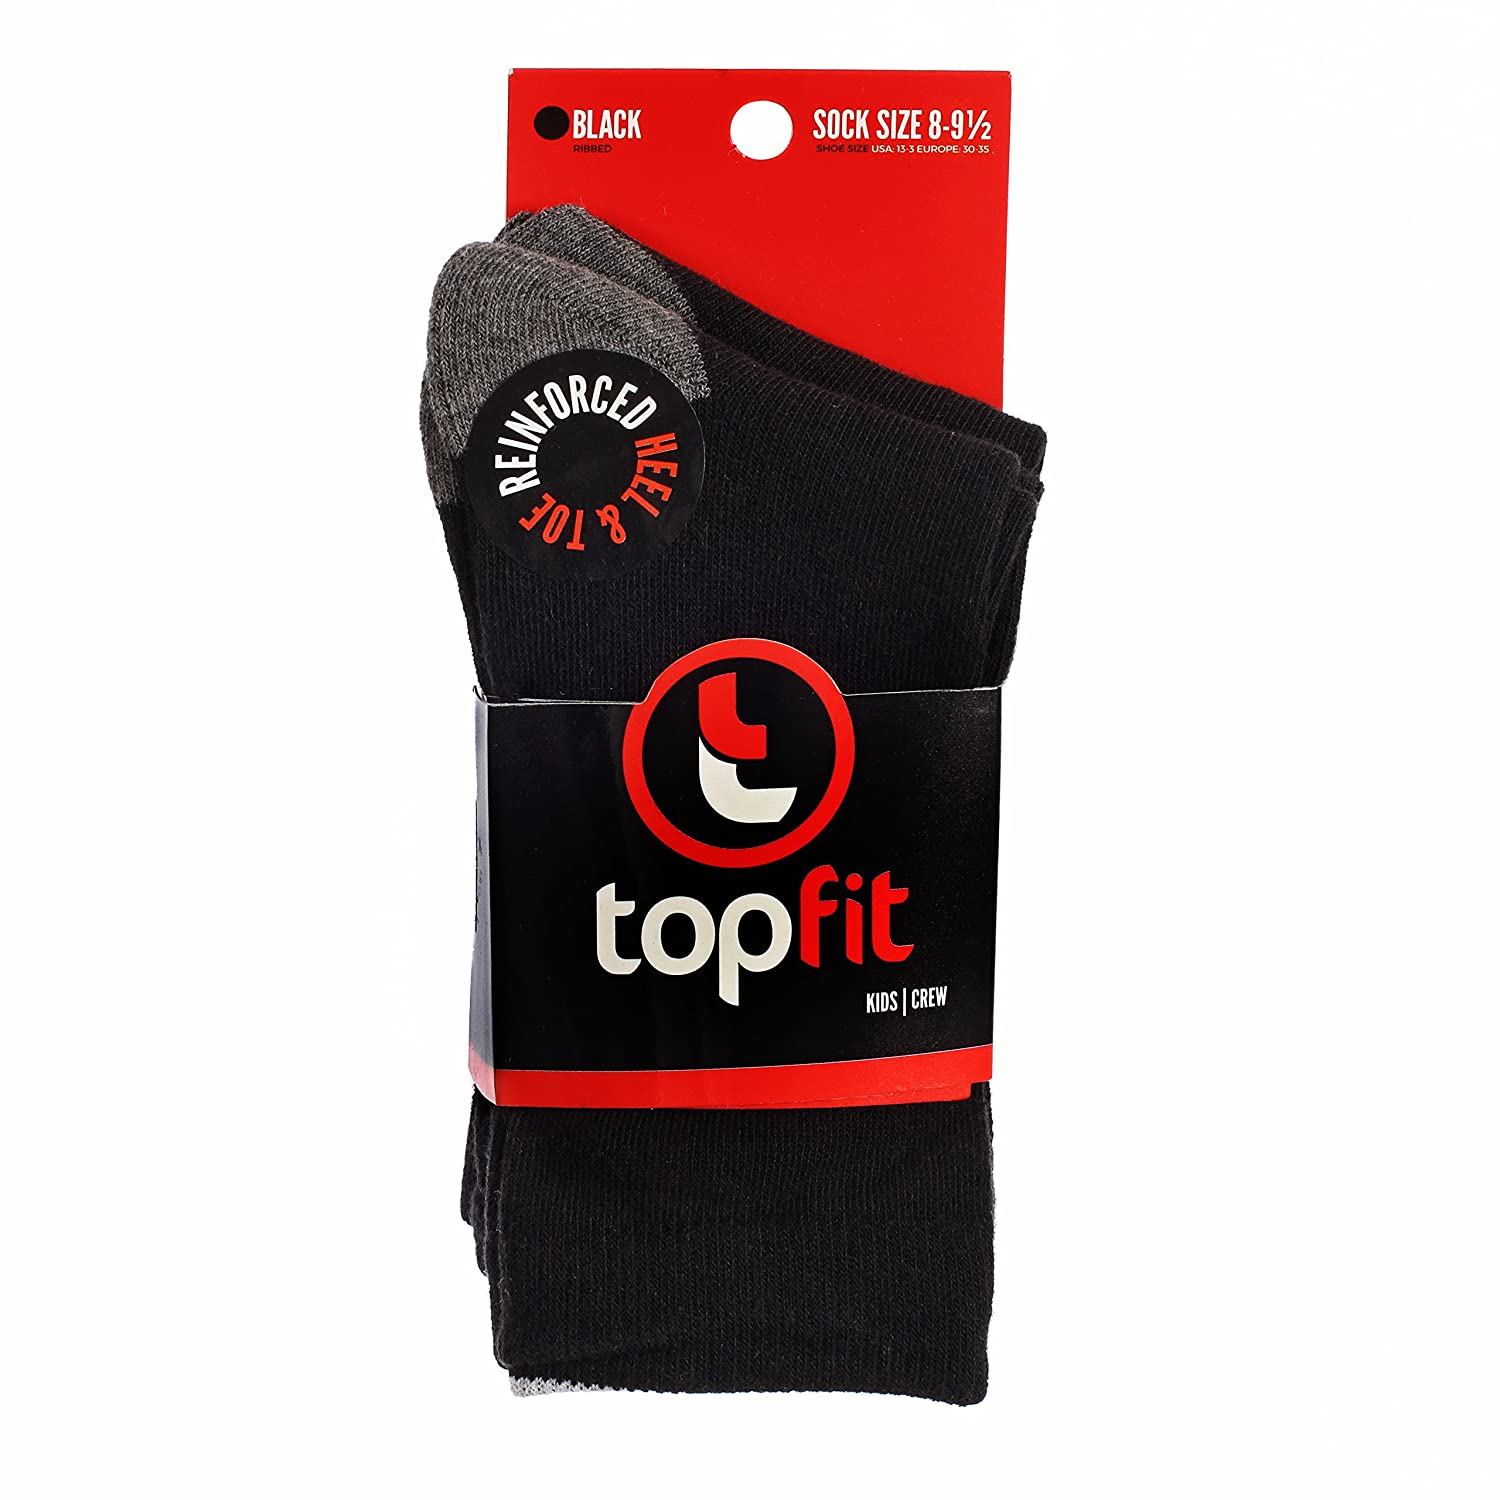 Youth Fashion Cotton Solid Crew Socks 3 and 6 Pack Boys Dress Socks by Topfit Kids Socks Boys Socks